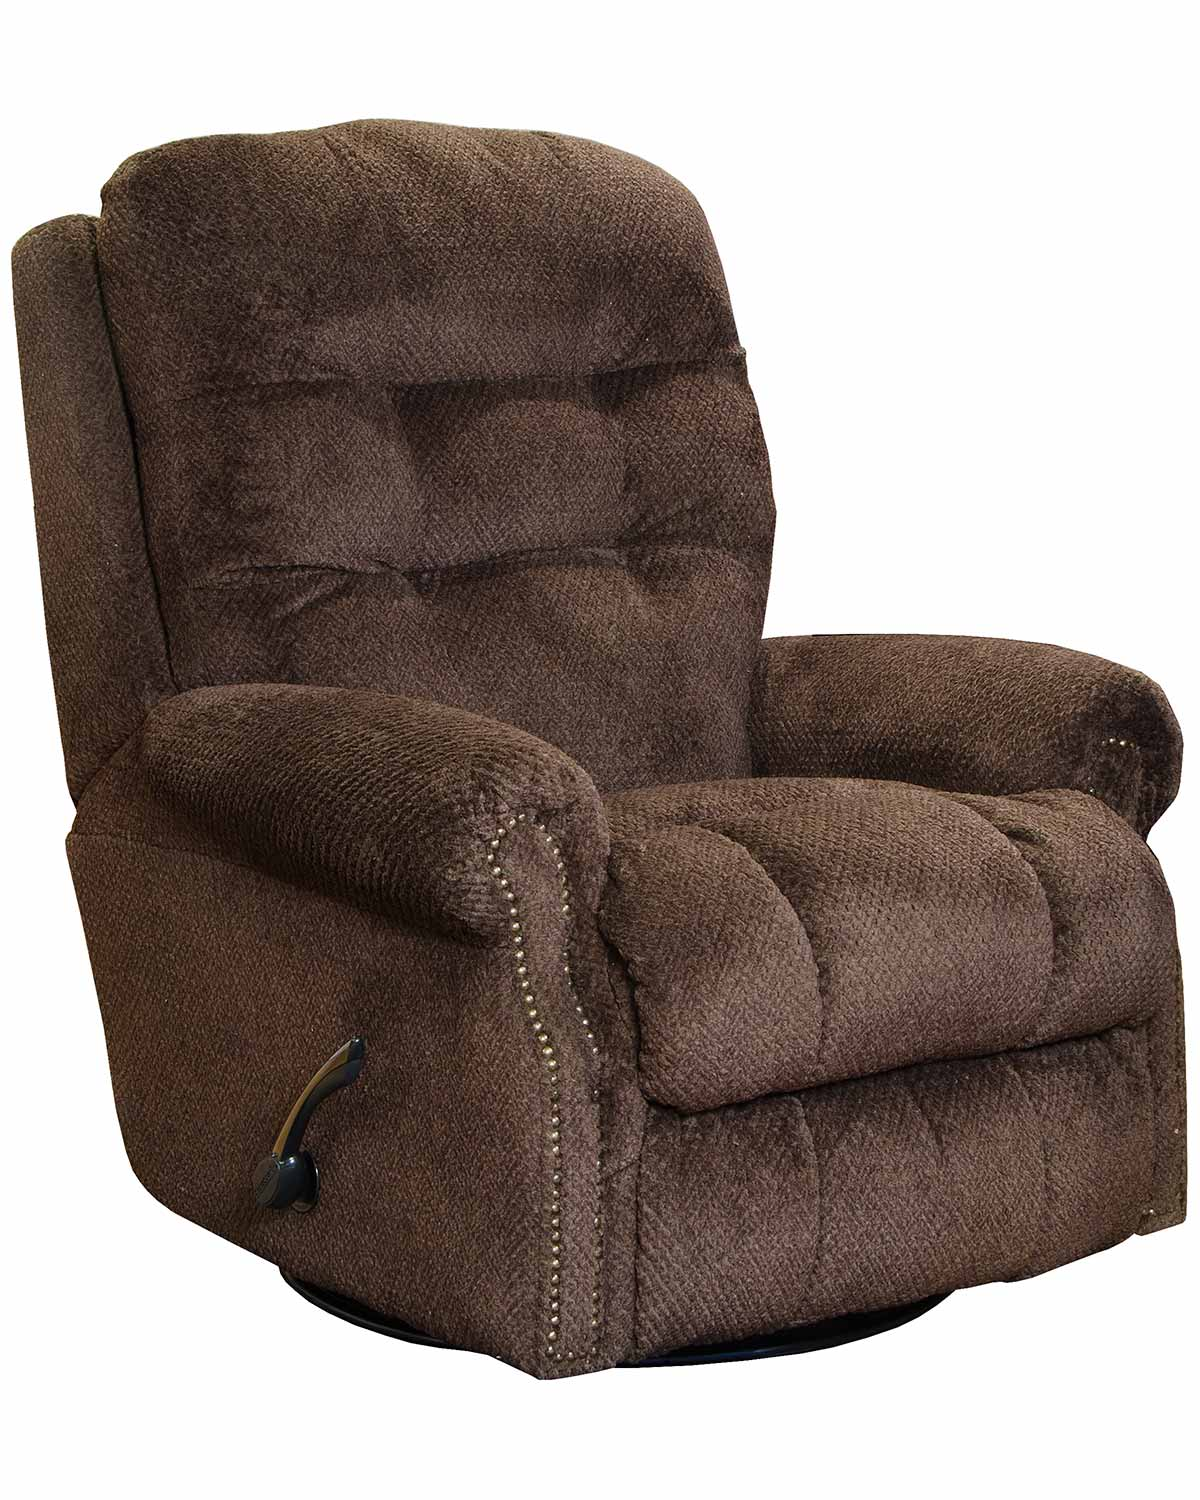 CatNapper Norwood Recliner Chair - Chocolate